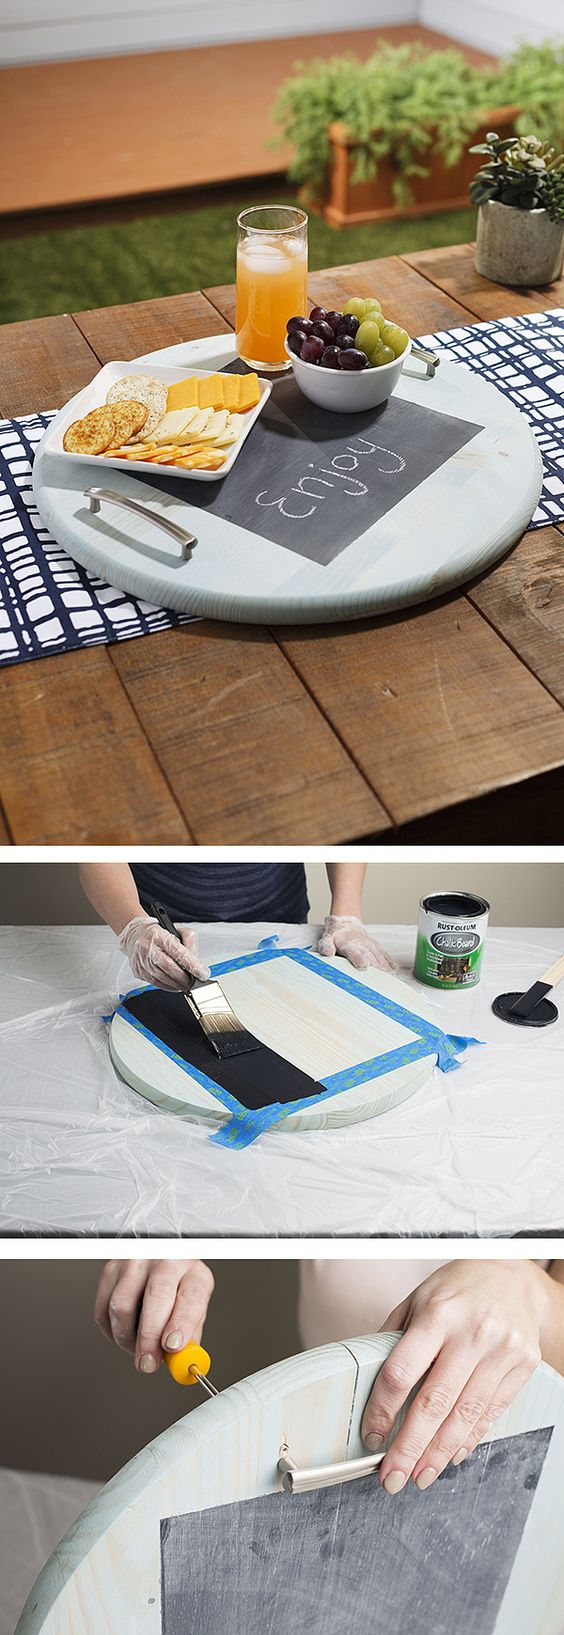 fun chalkboard paint project. With this chalkboard party tray you can write a party greeting or draw a party-related doodle on it.